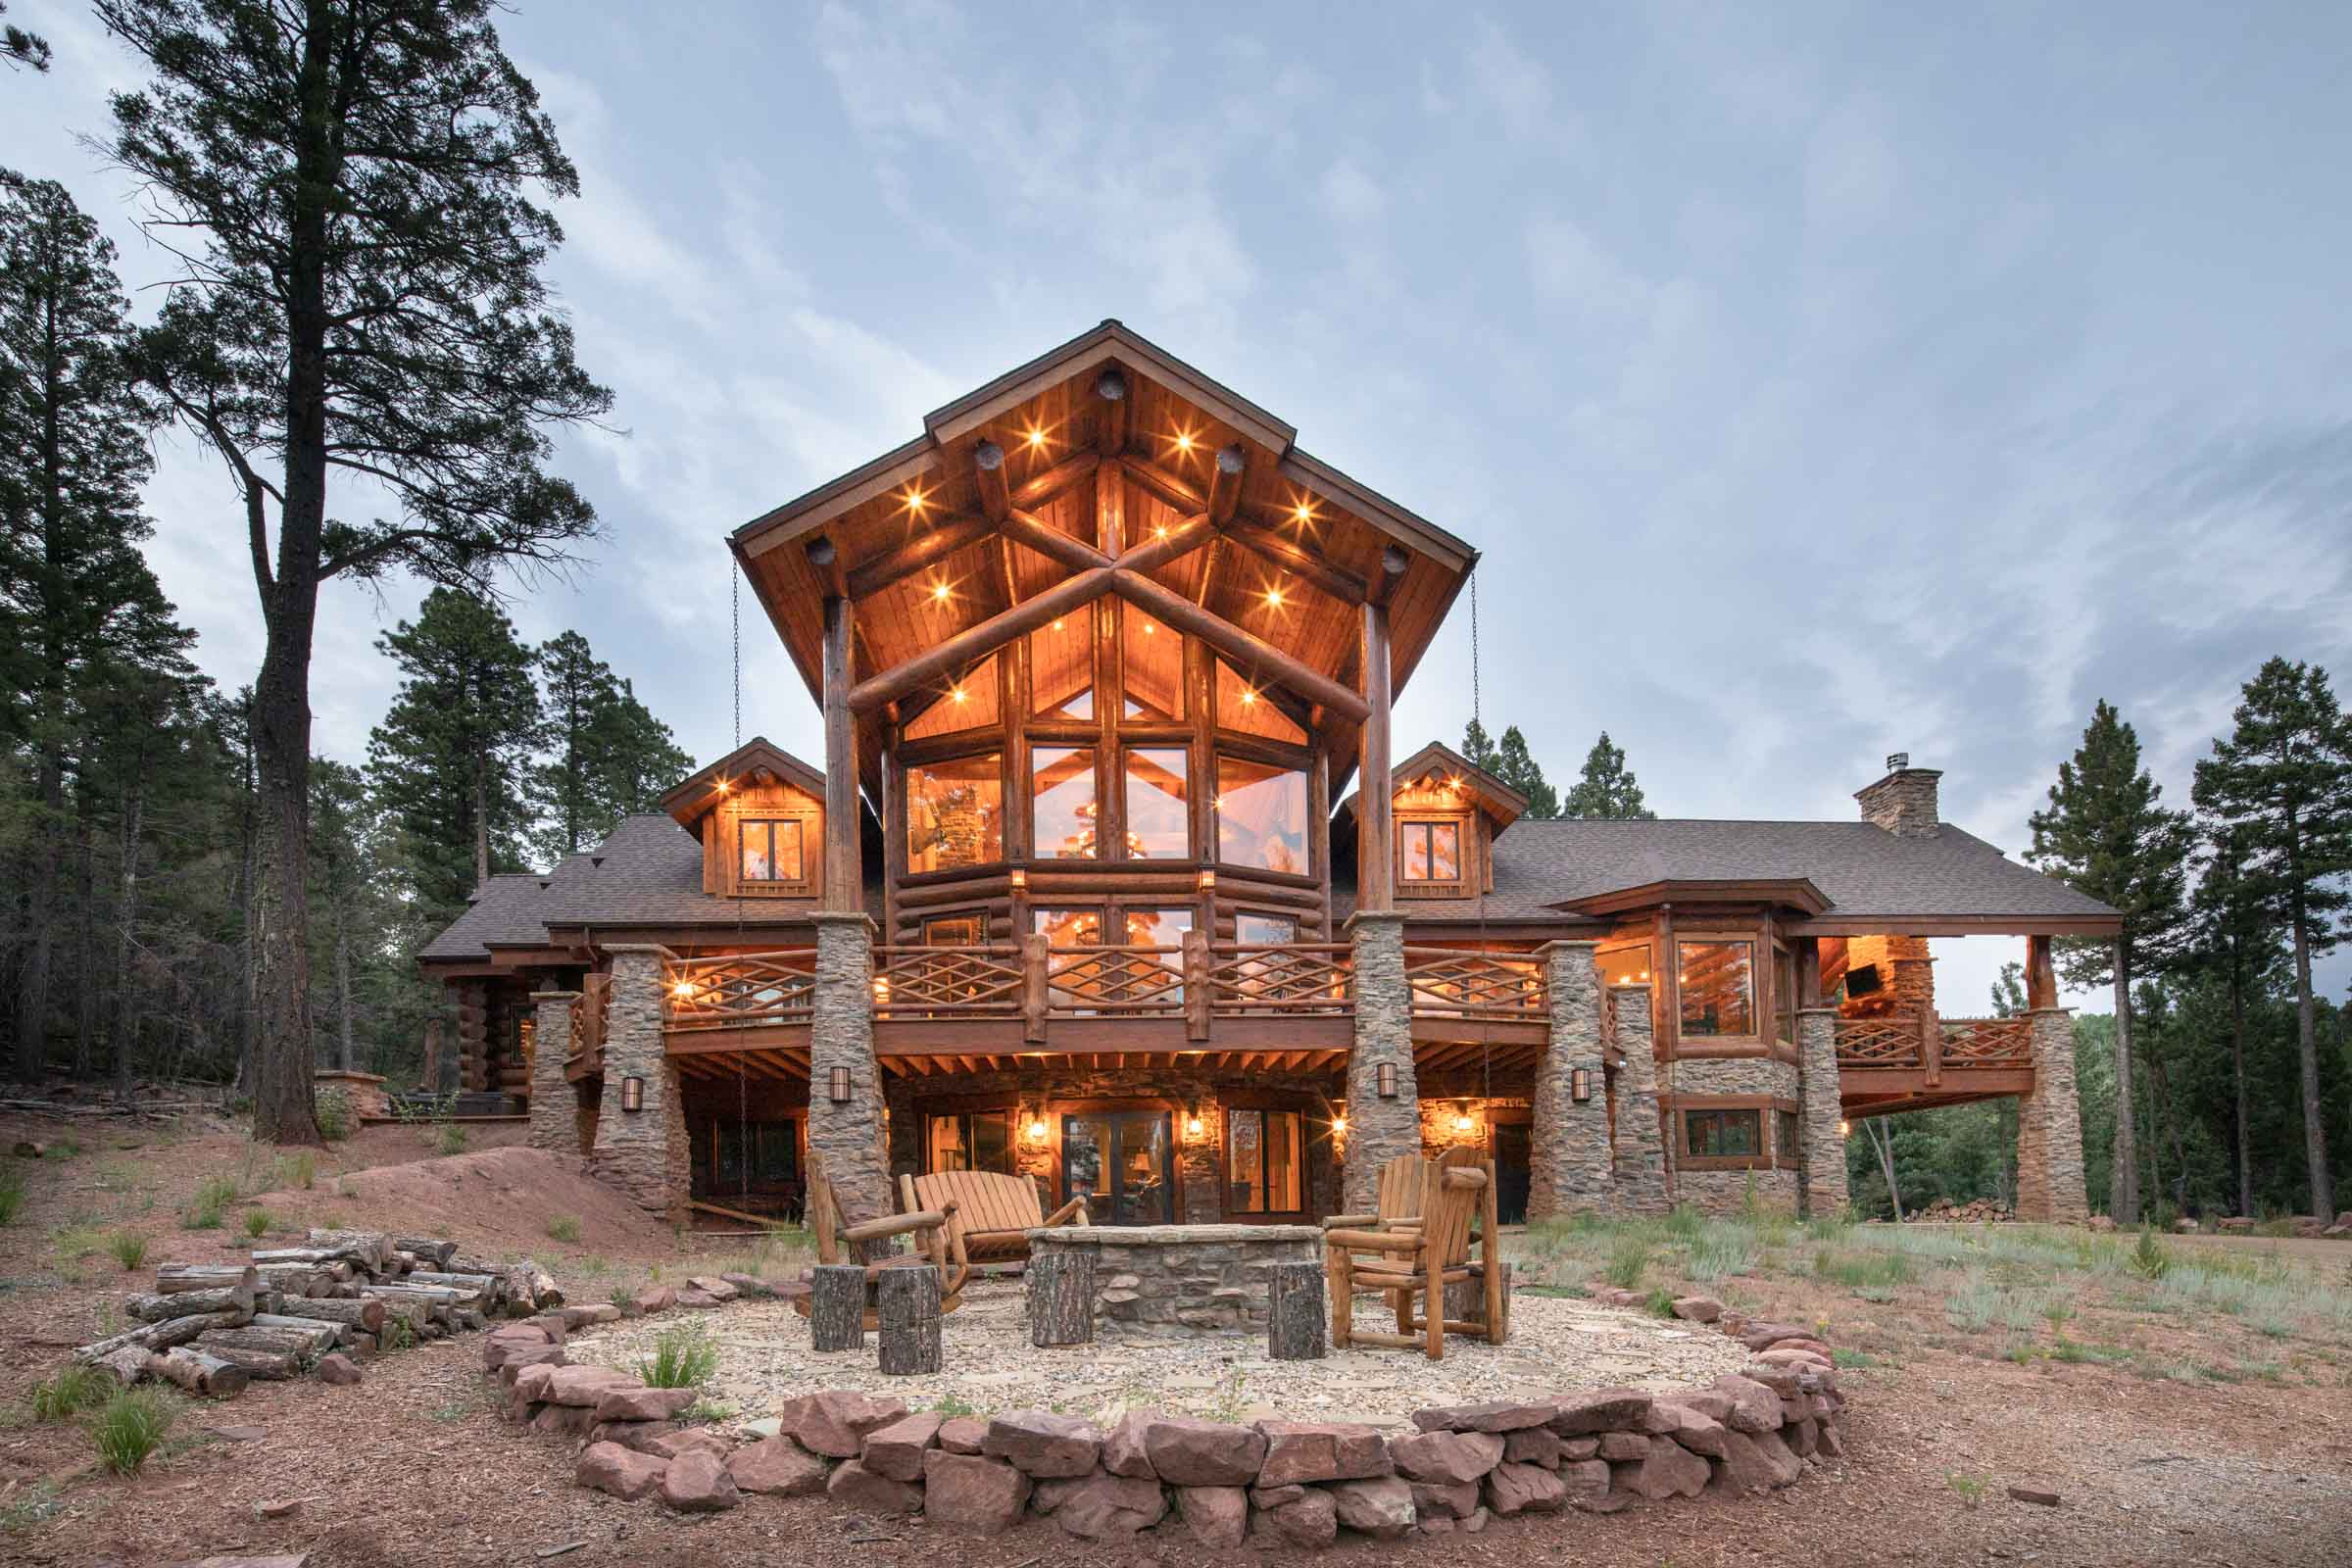 Luxury log cabin angel fire new mexico-4